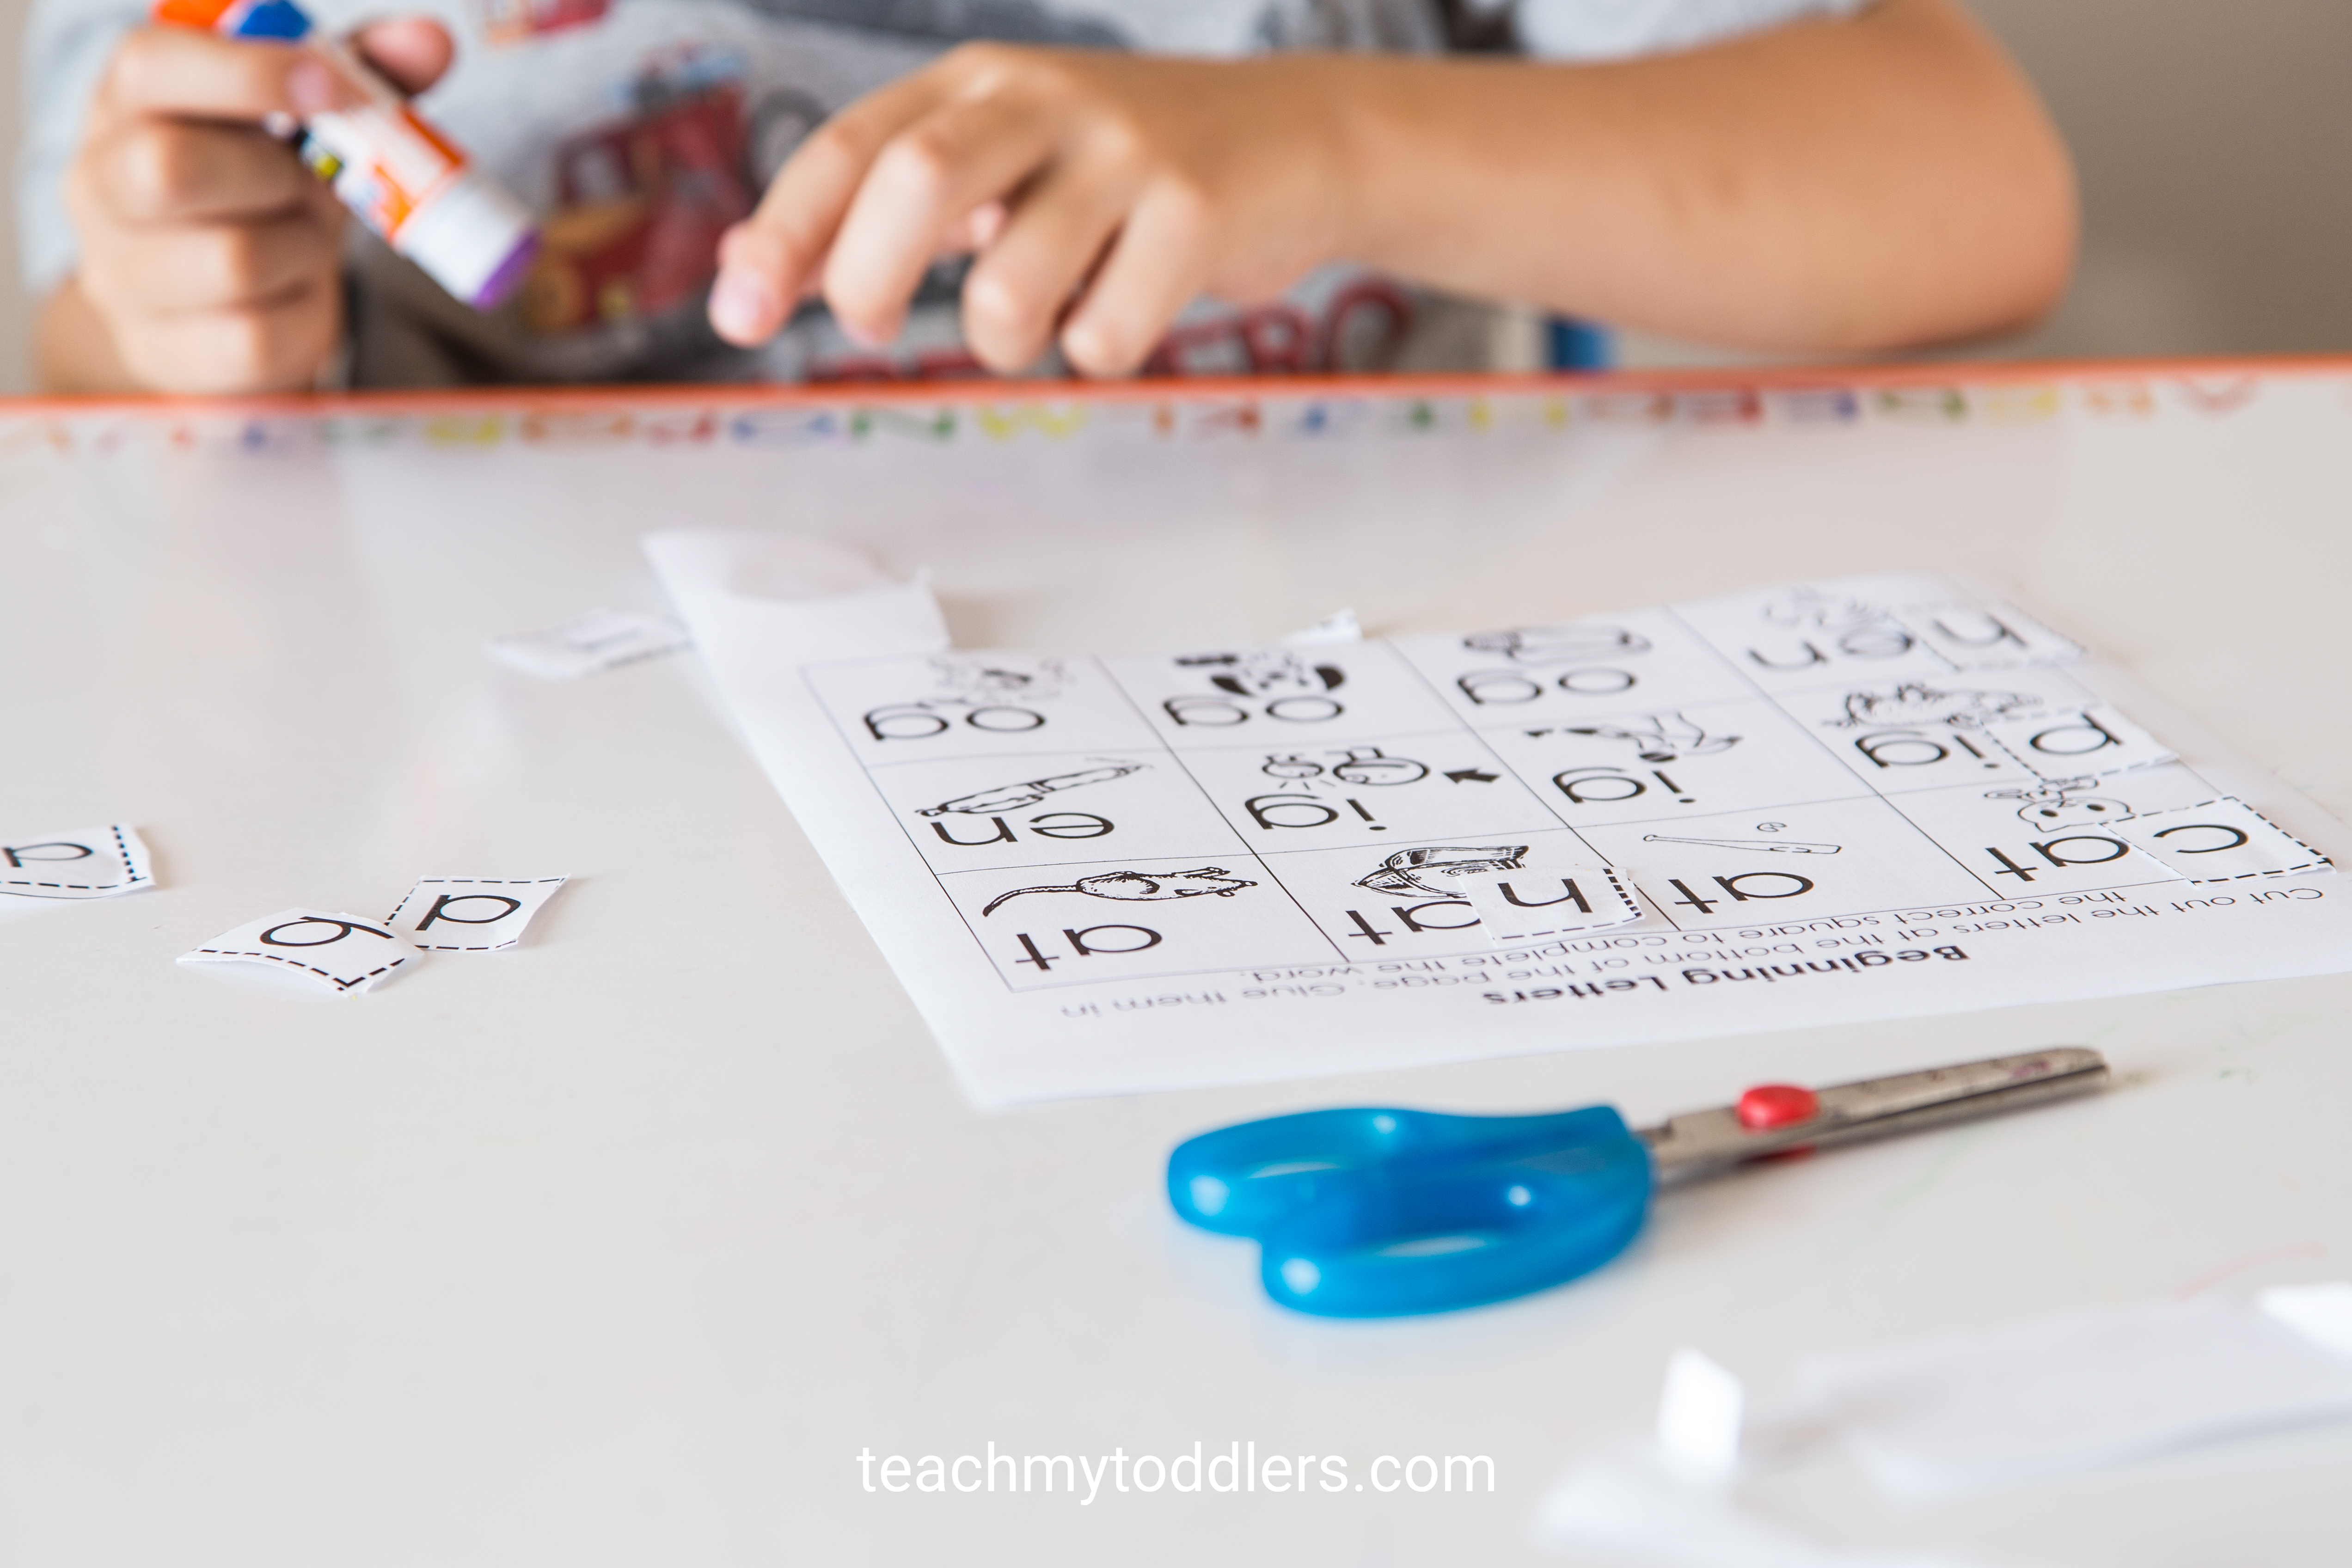 Discover how to use this cut and paste activity to teach your preschoolers about letters